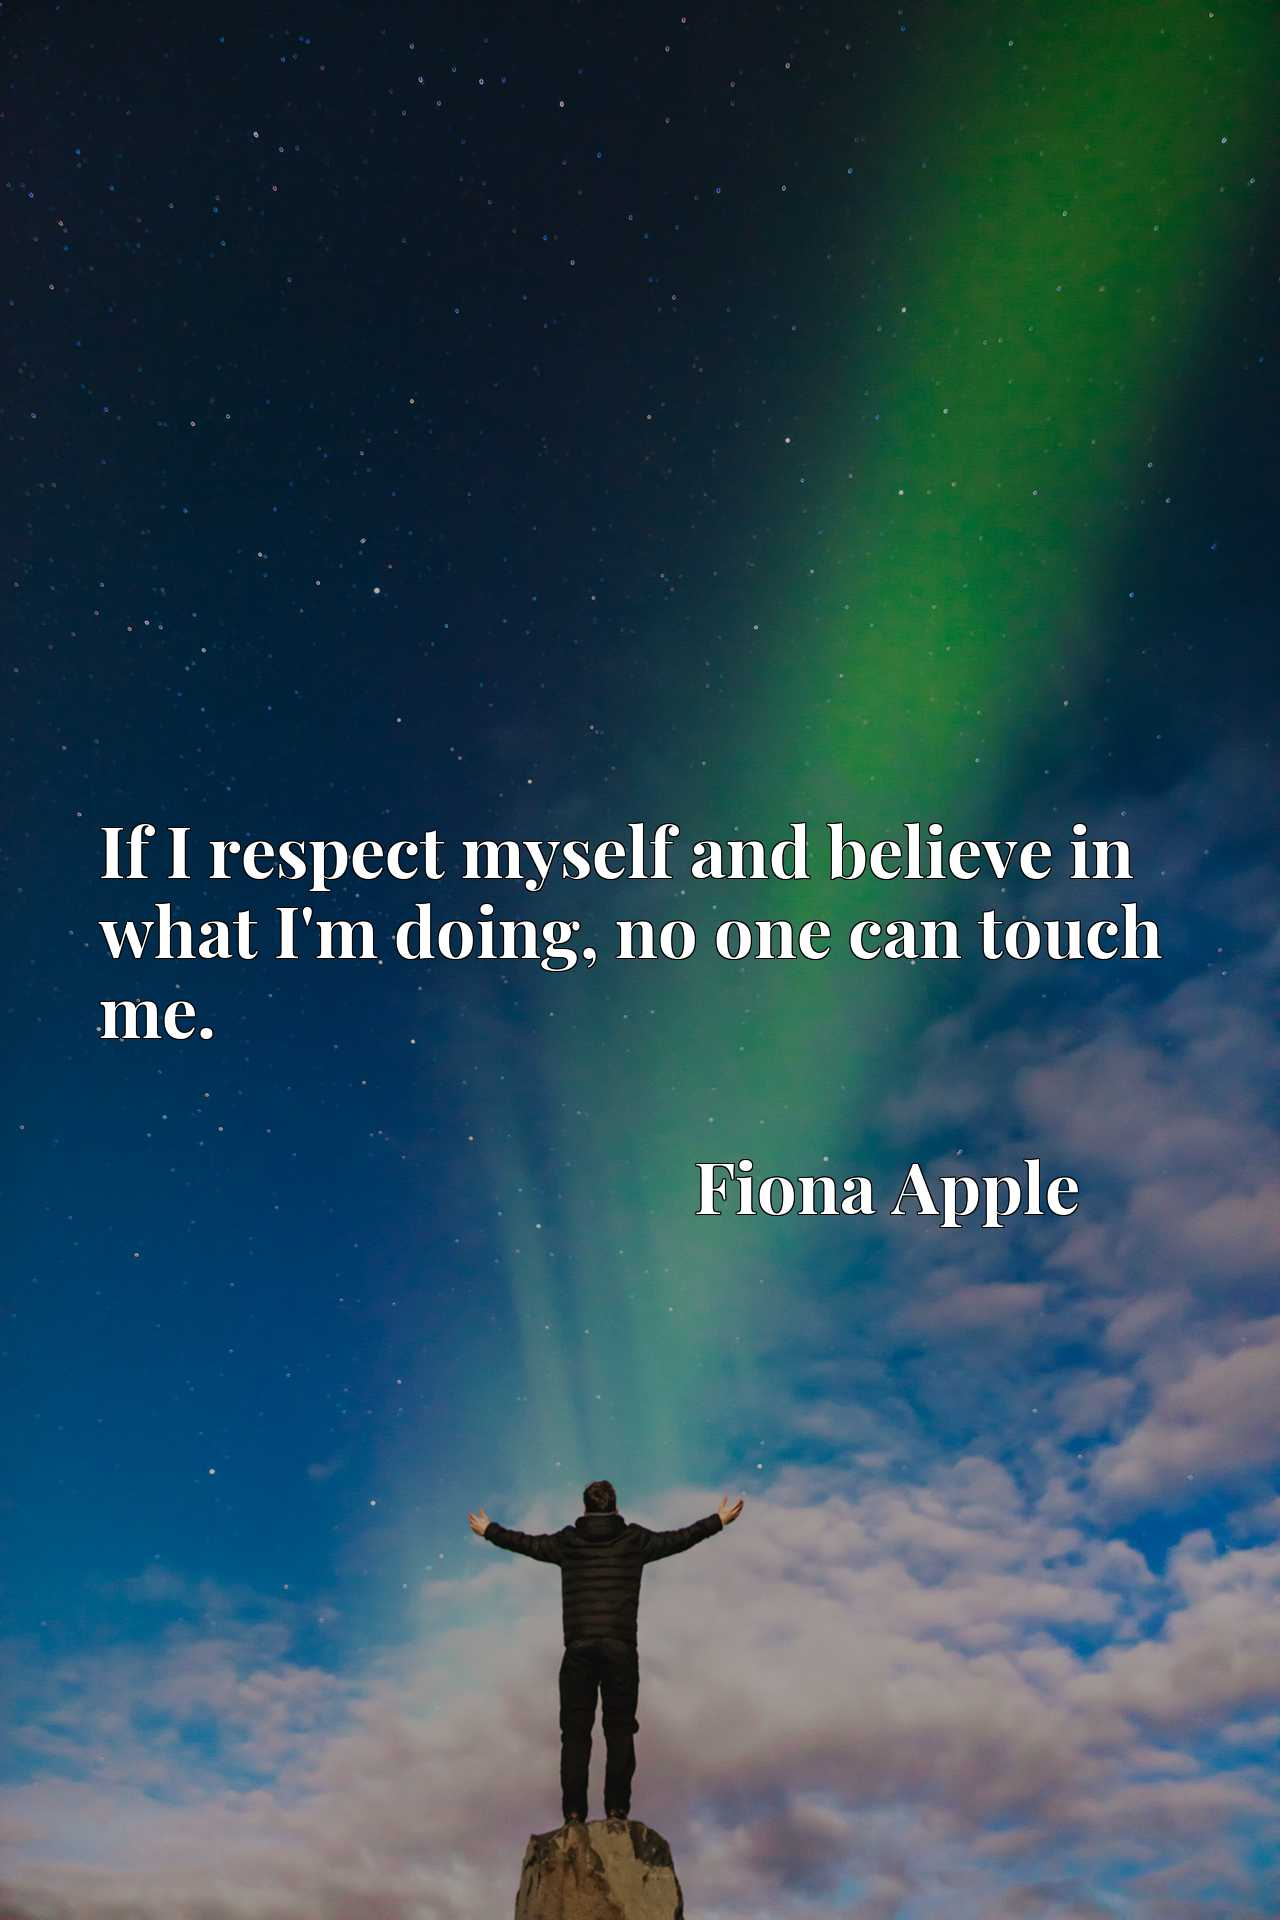 Quote Picture :If I respect myself and believe in what I'm doing, no one can touch me.